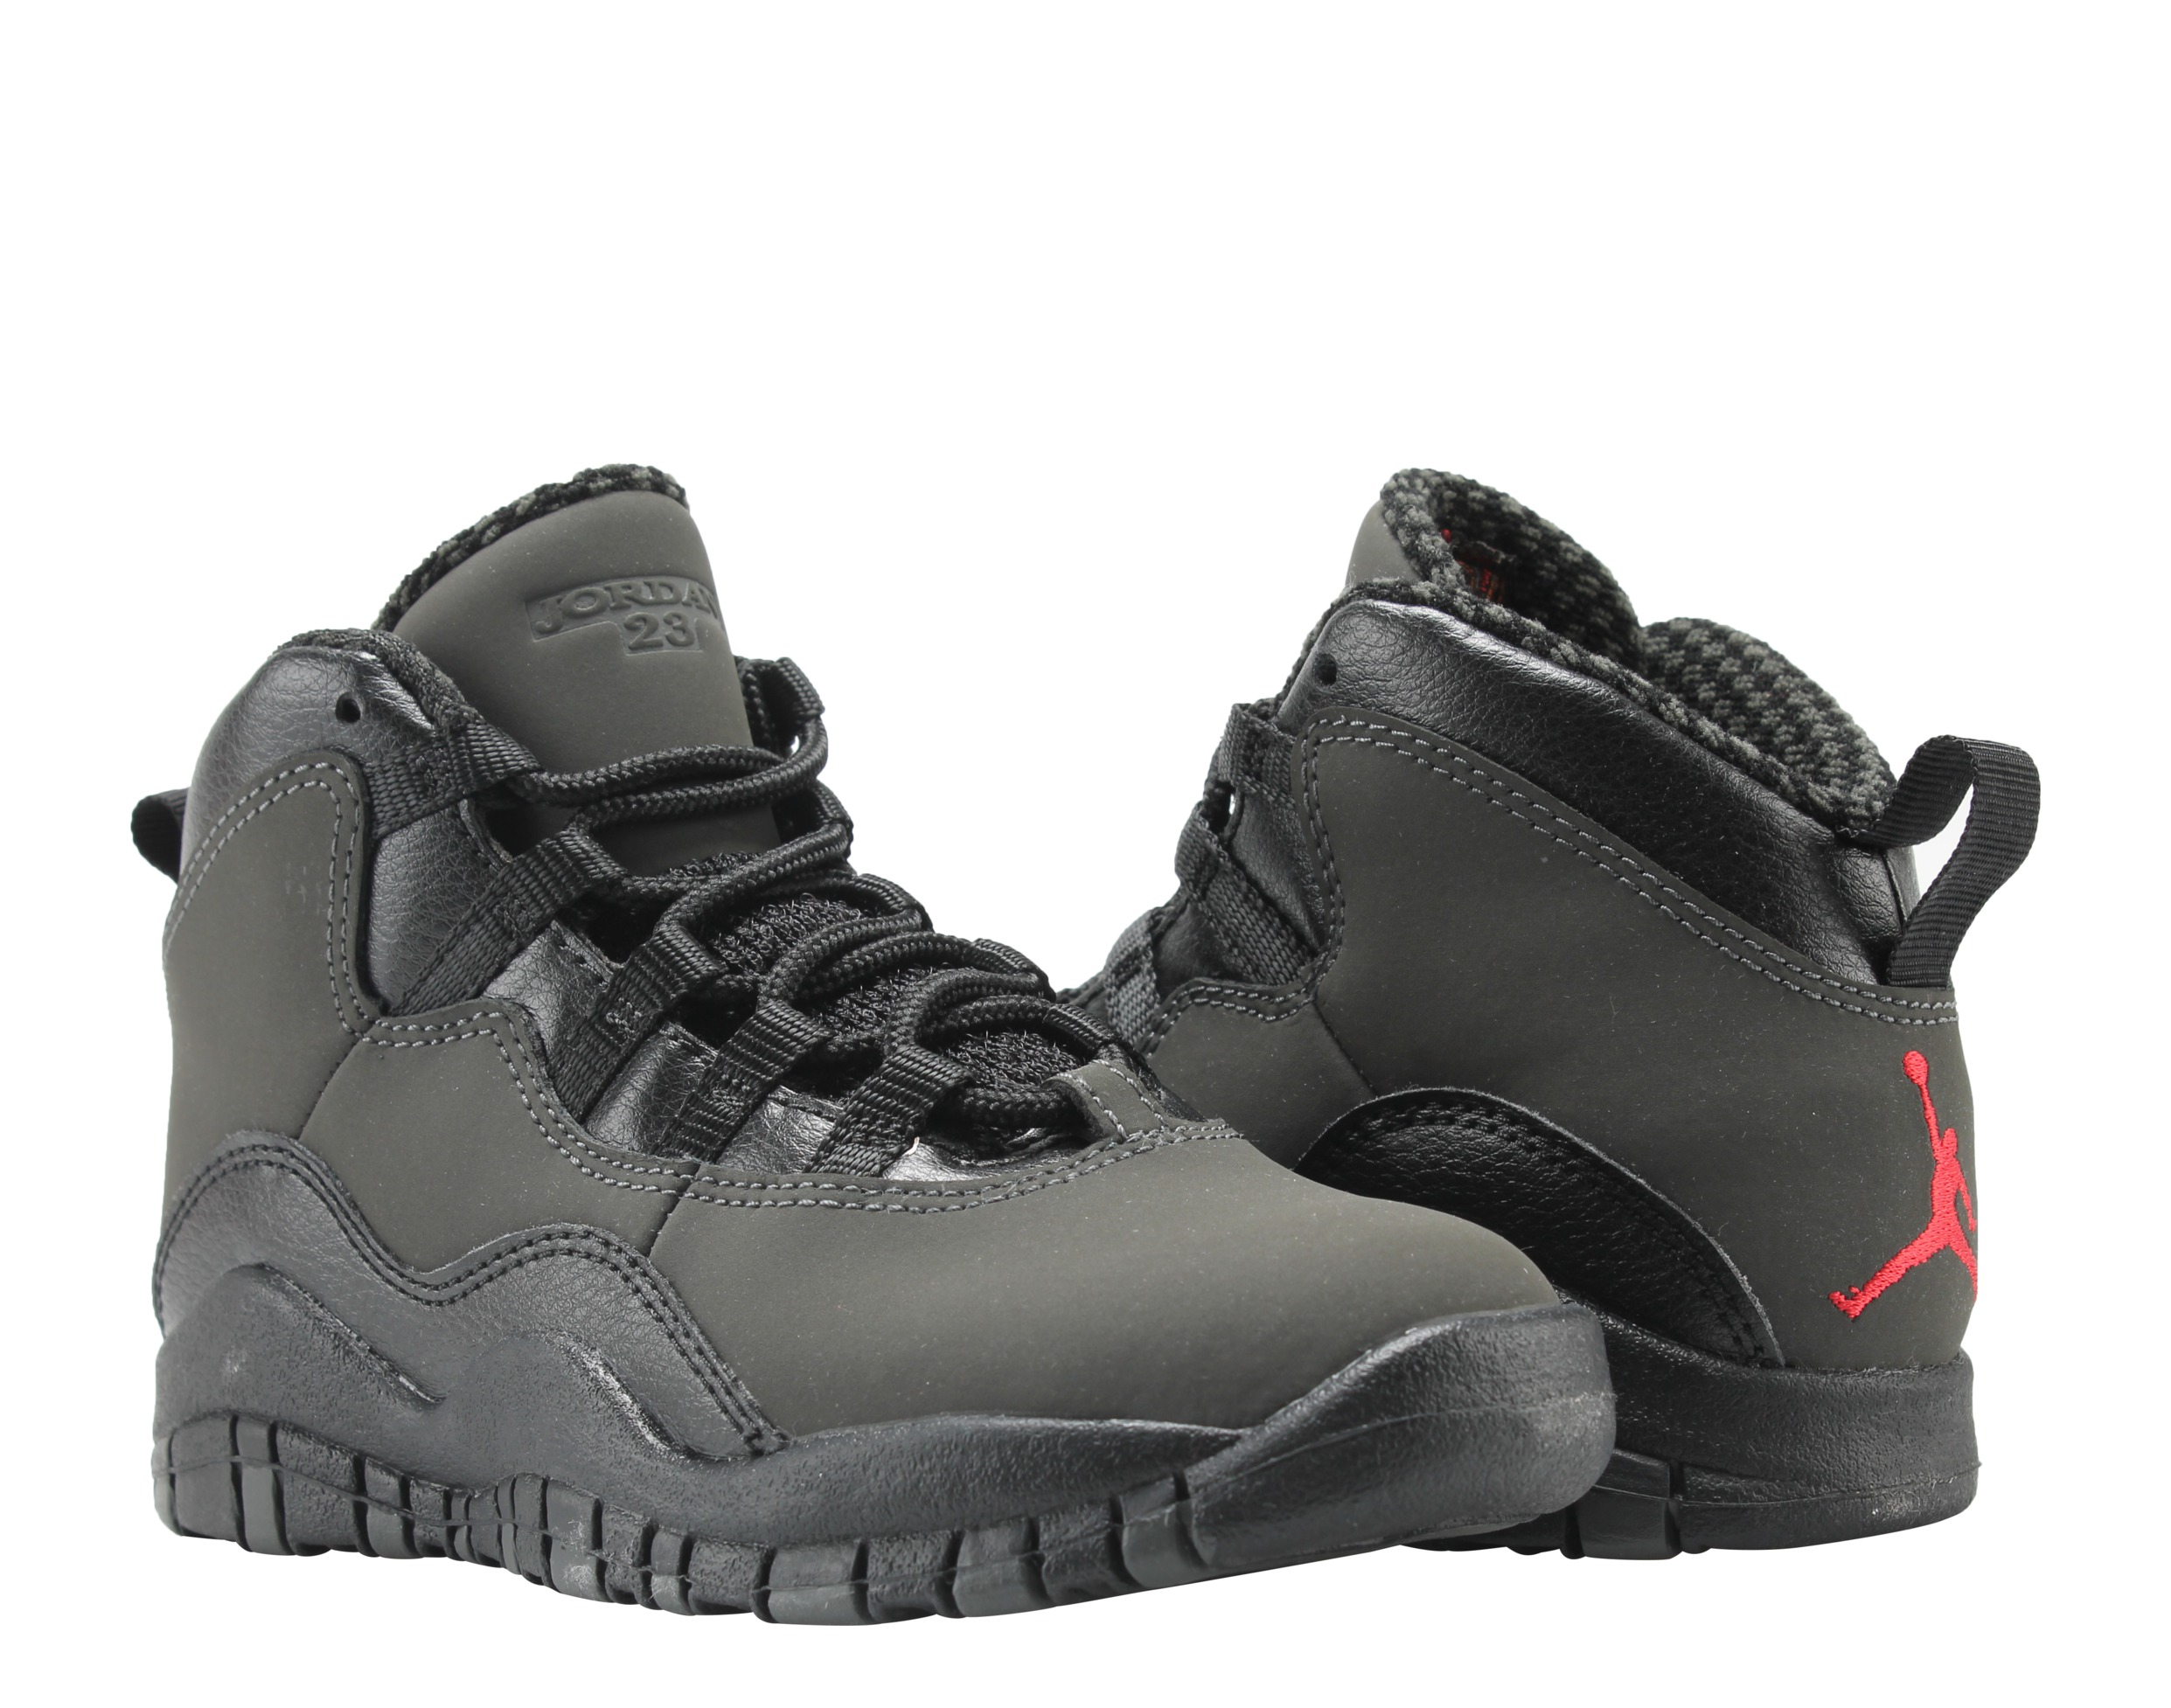 the latest 94862 8a482 ... switzerland nike air jordan 10 retro bp dark shadow little kids  basketball shoes 310807 002 walmart